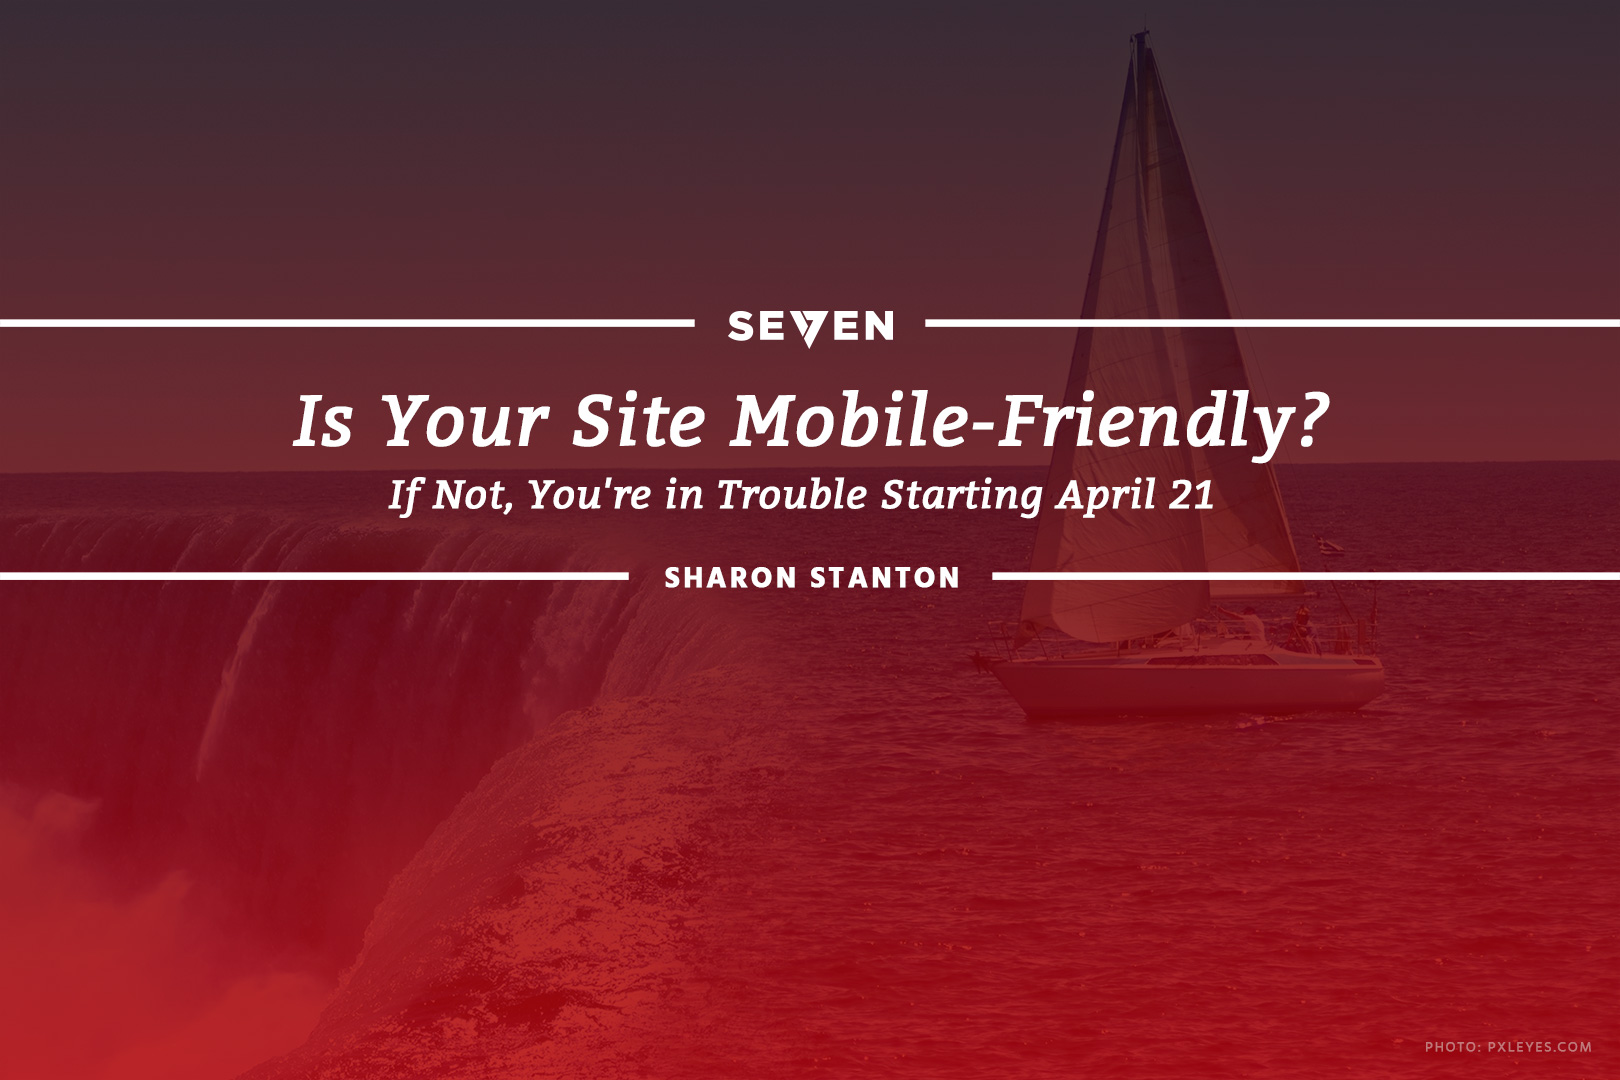 Is Your Site Mobile-Friendly? If Not, You're in Trouble Starting April 21